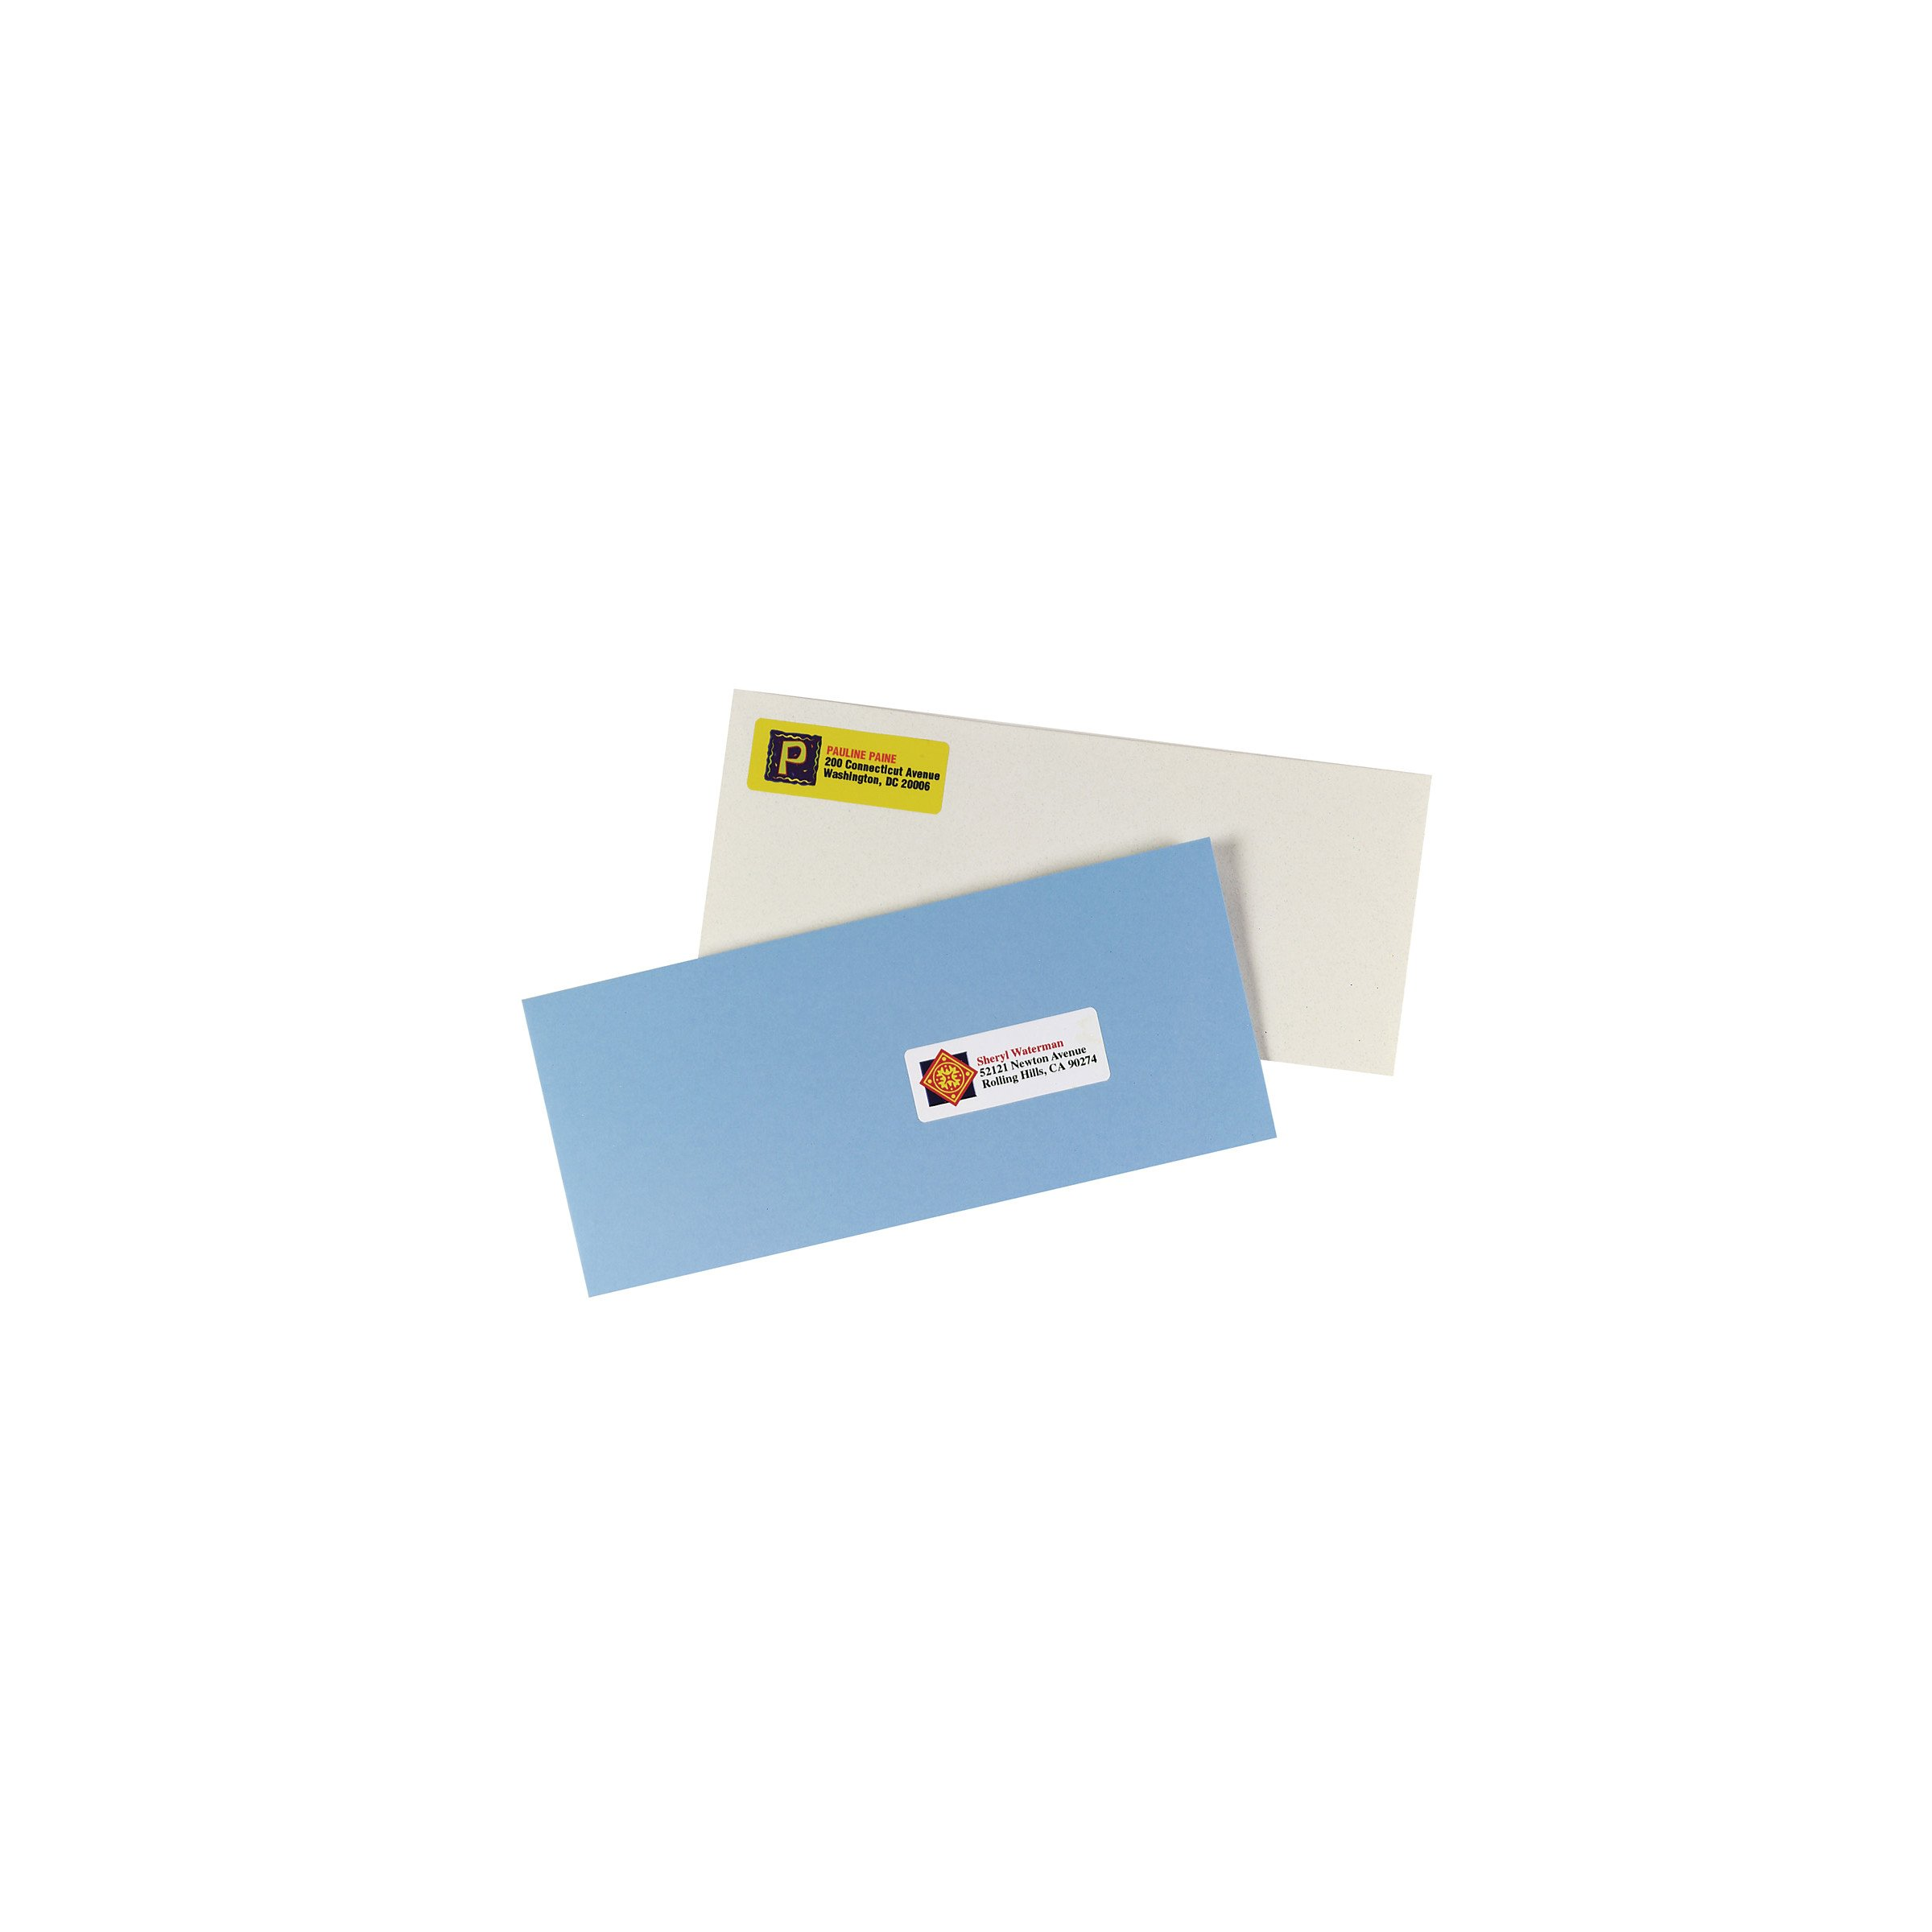 Avery Address Labels For Ink Jet Printers 8250 (20 Sheets) by Avery (Image #3)